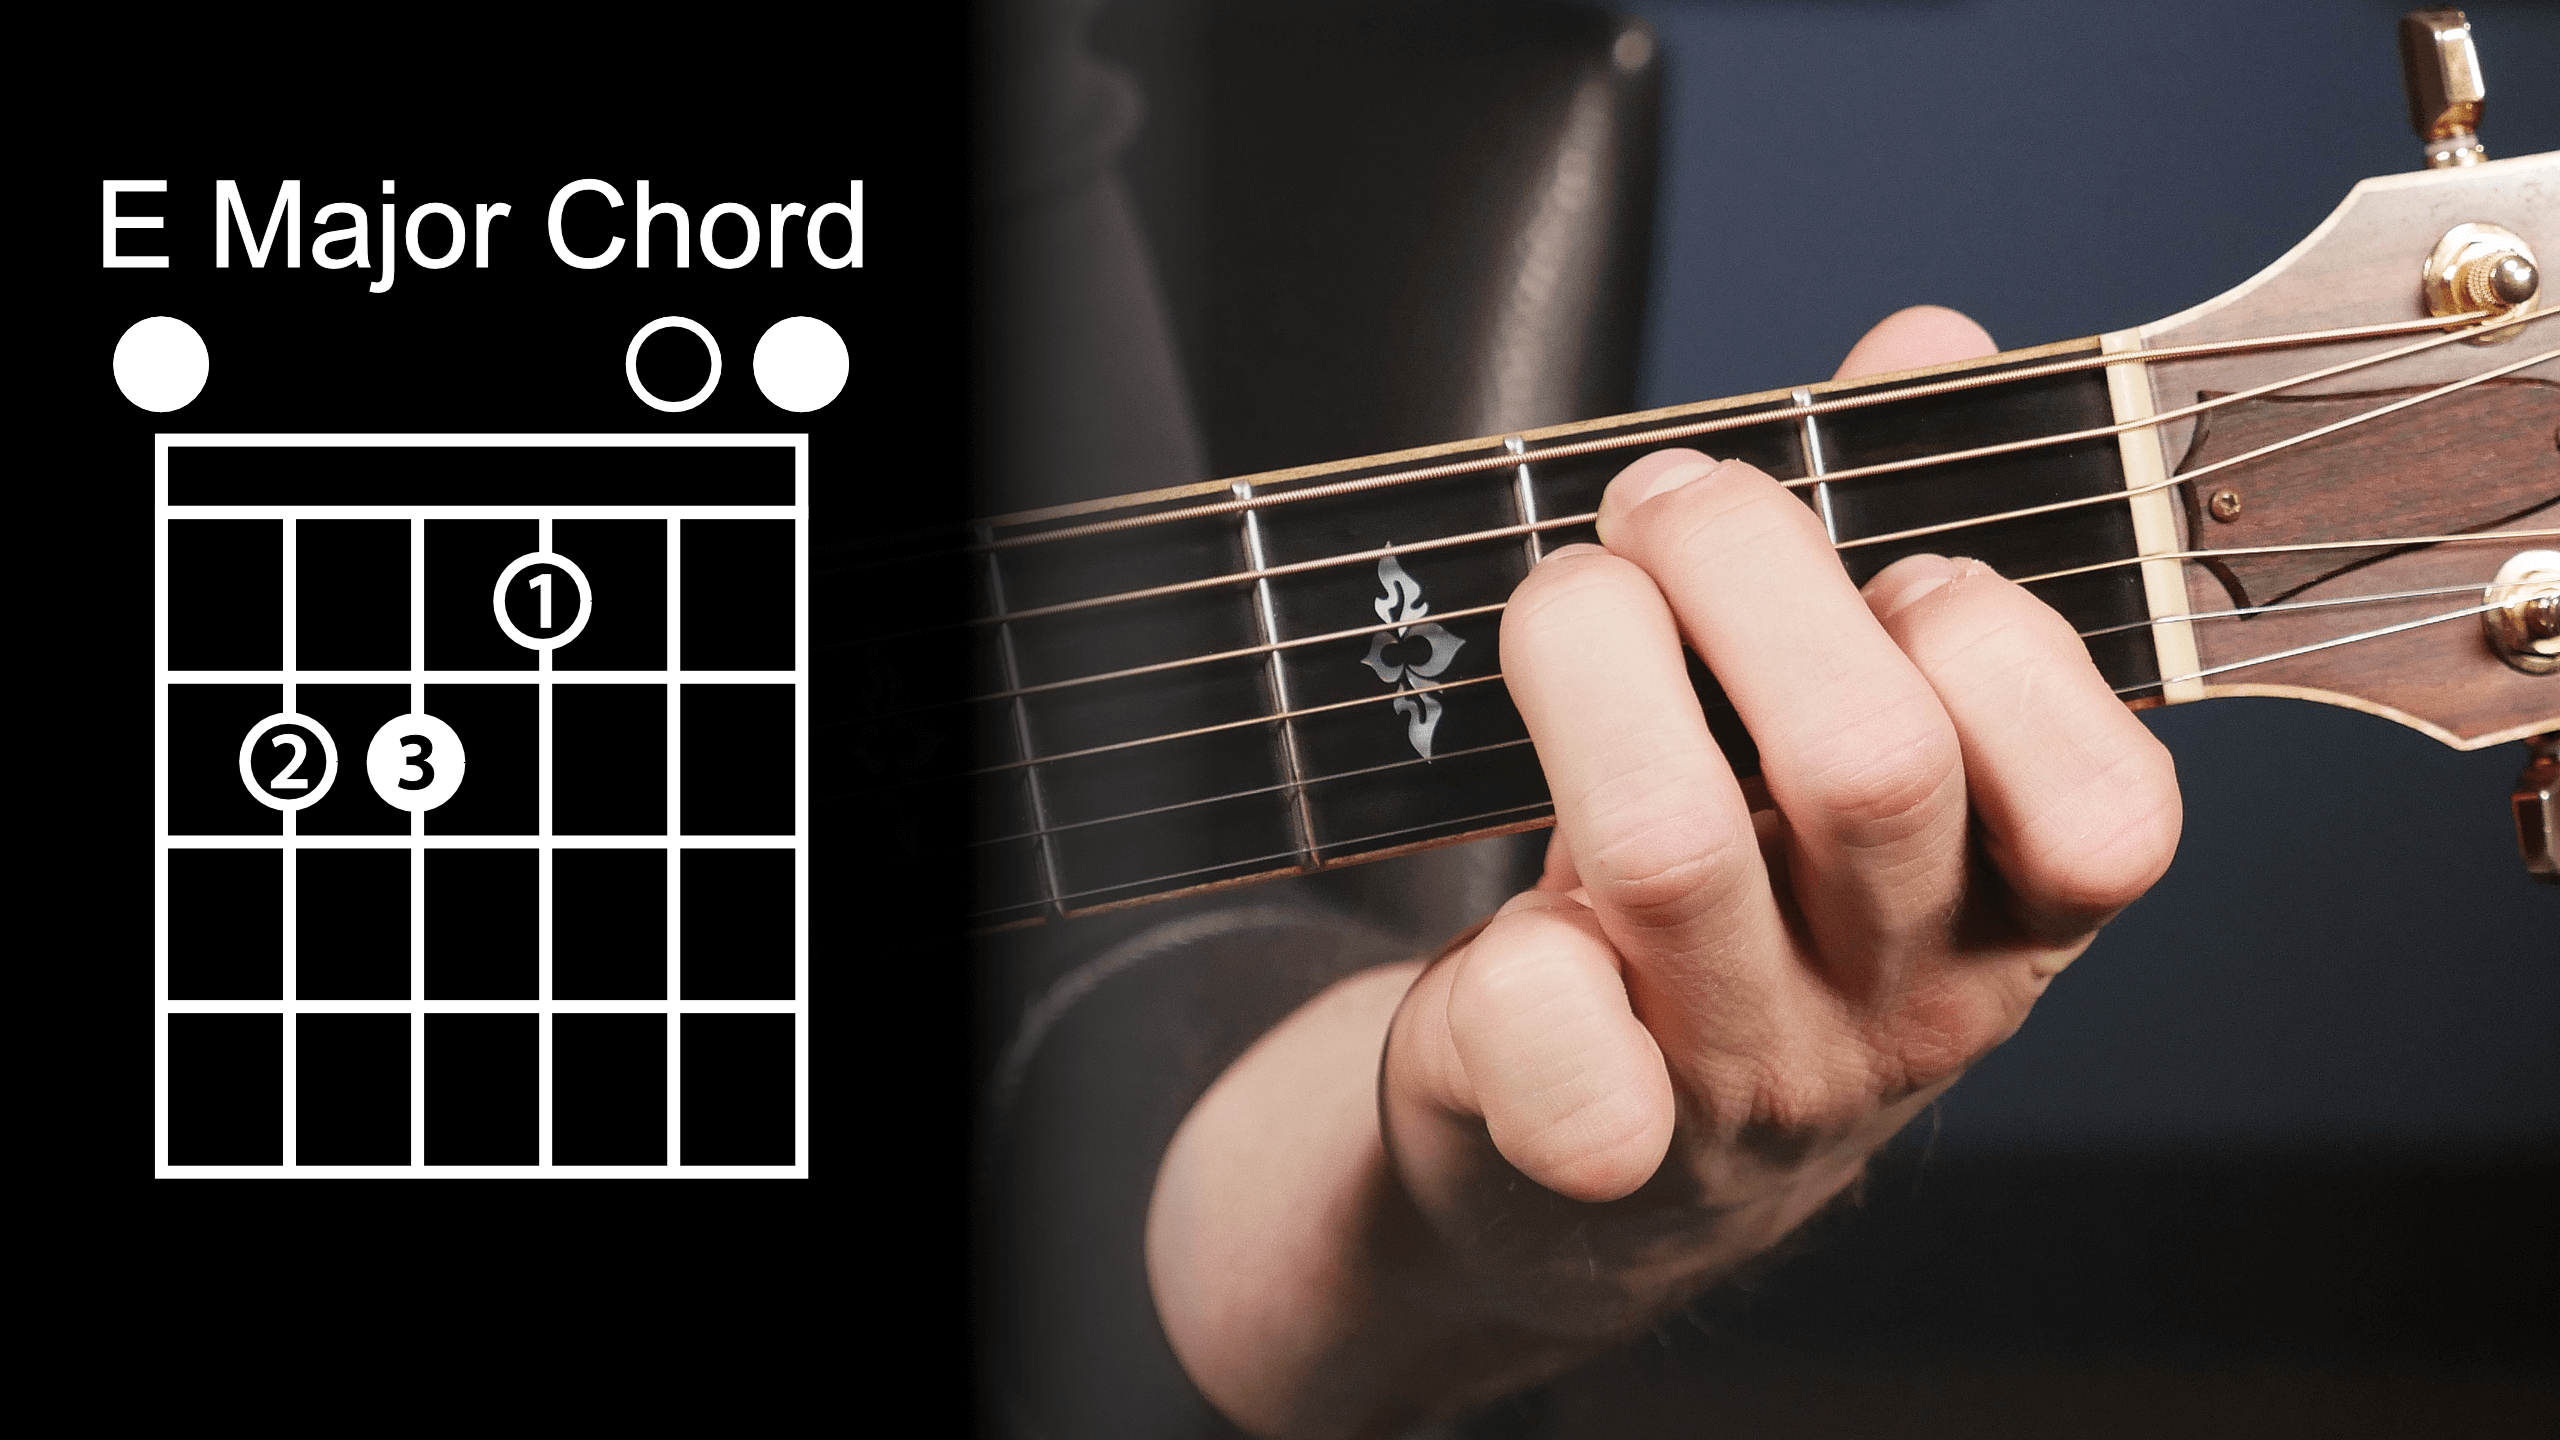 E Major Chord Diagram